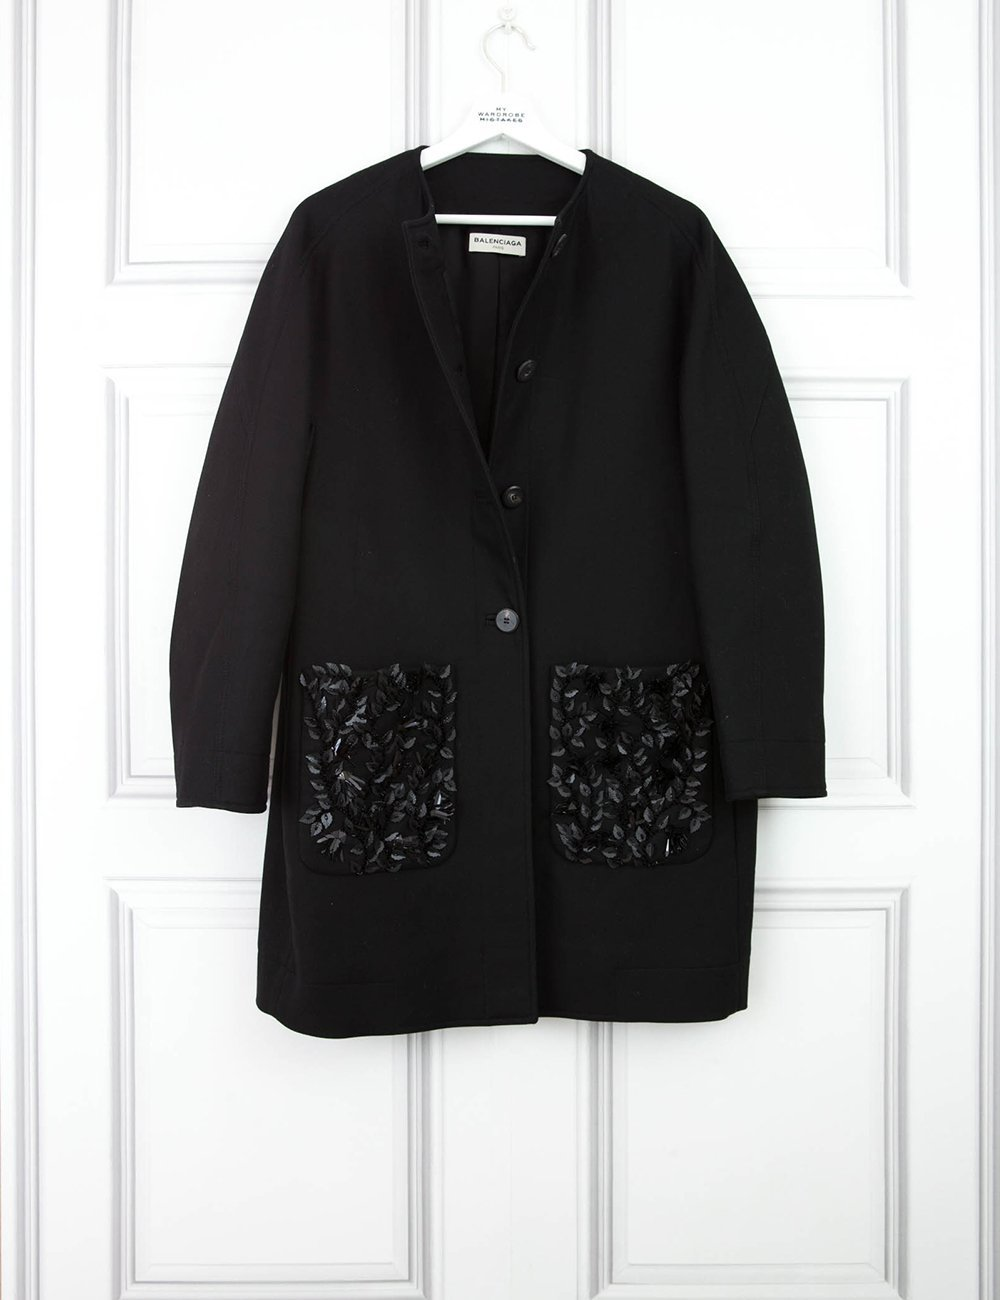 BALENCIAGA CLOTHING Box-cut 3/4 length sleeve coat with pocket detail